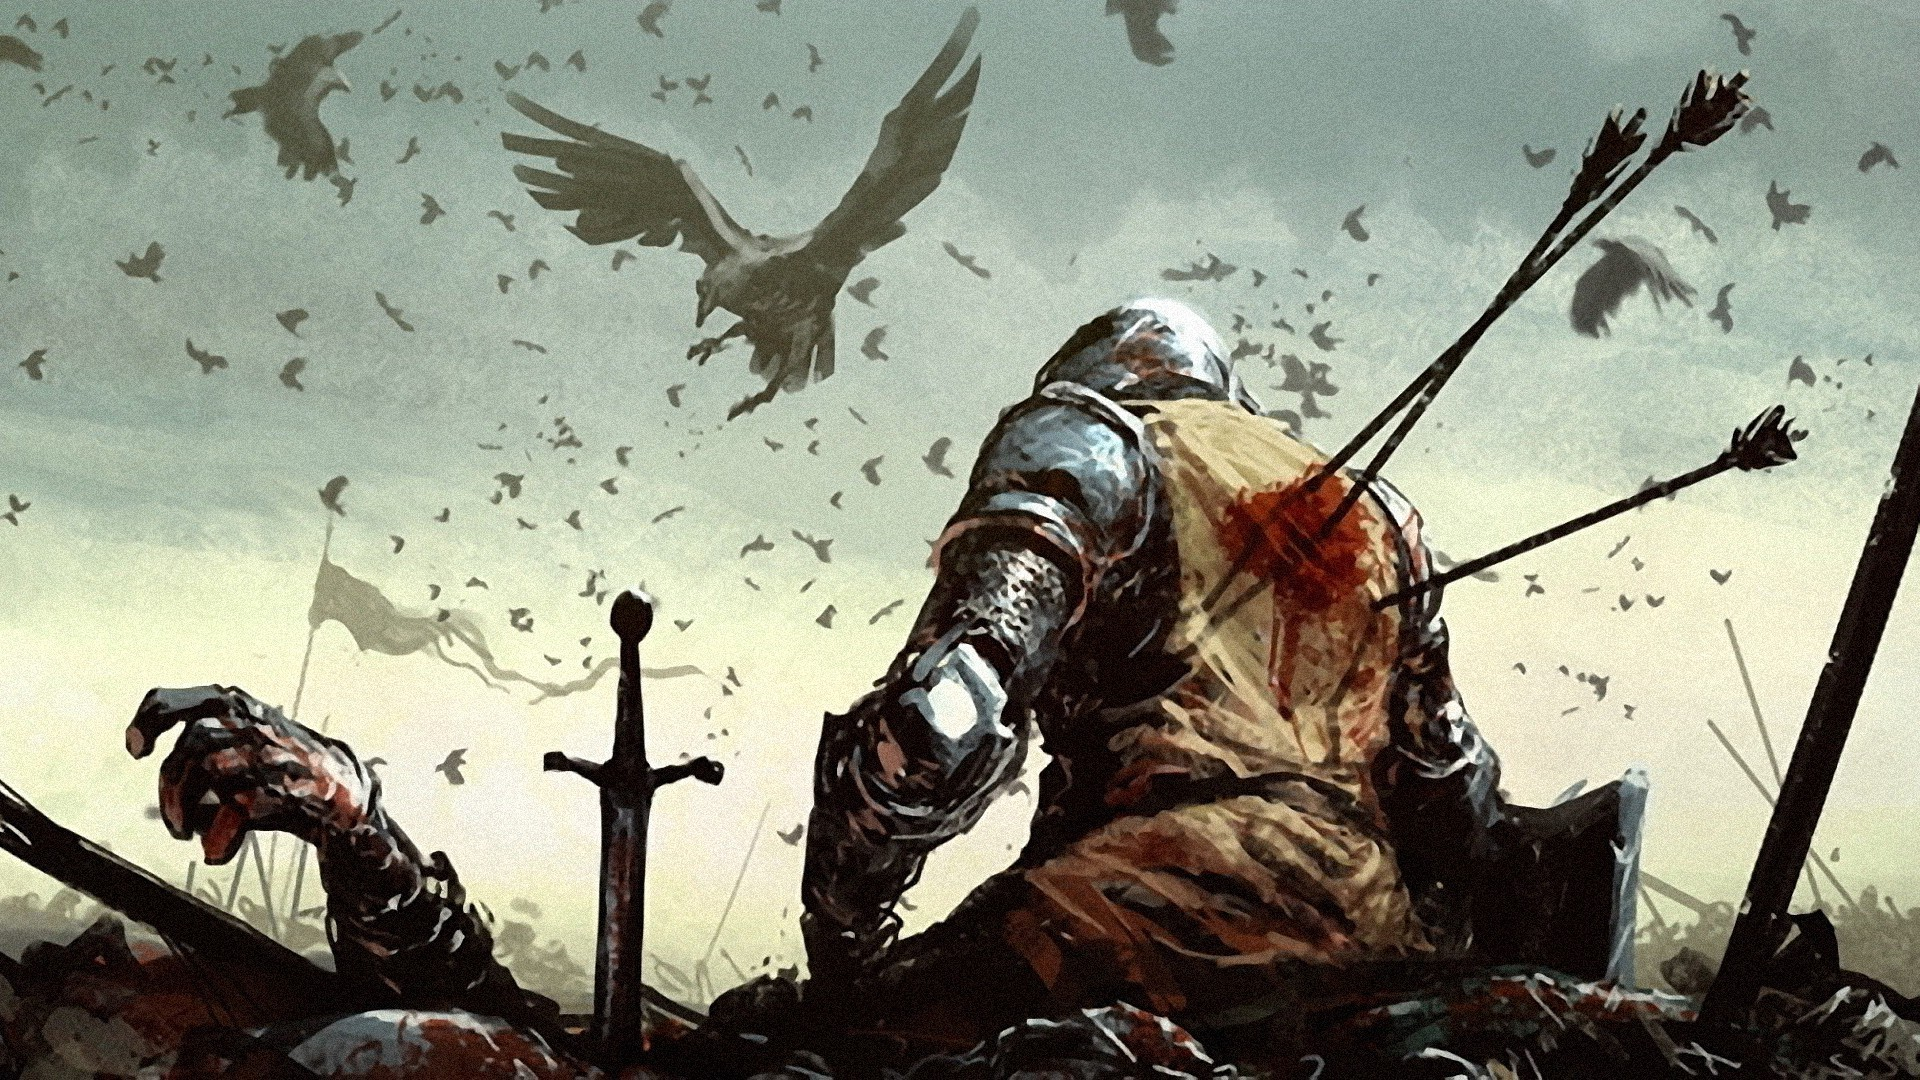 dead-in-battle-fantasy-hd-wallpaper-1920x1080-2087.jpg